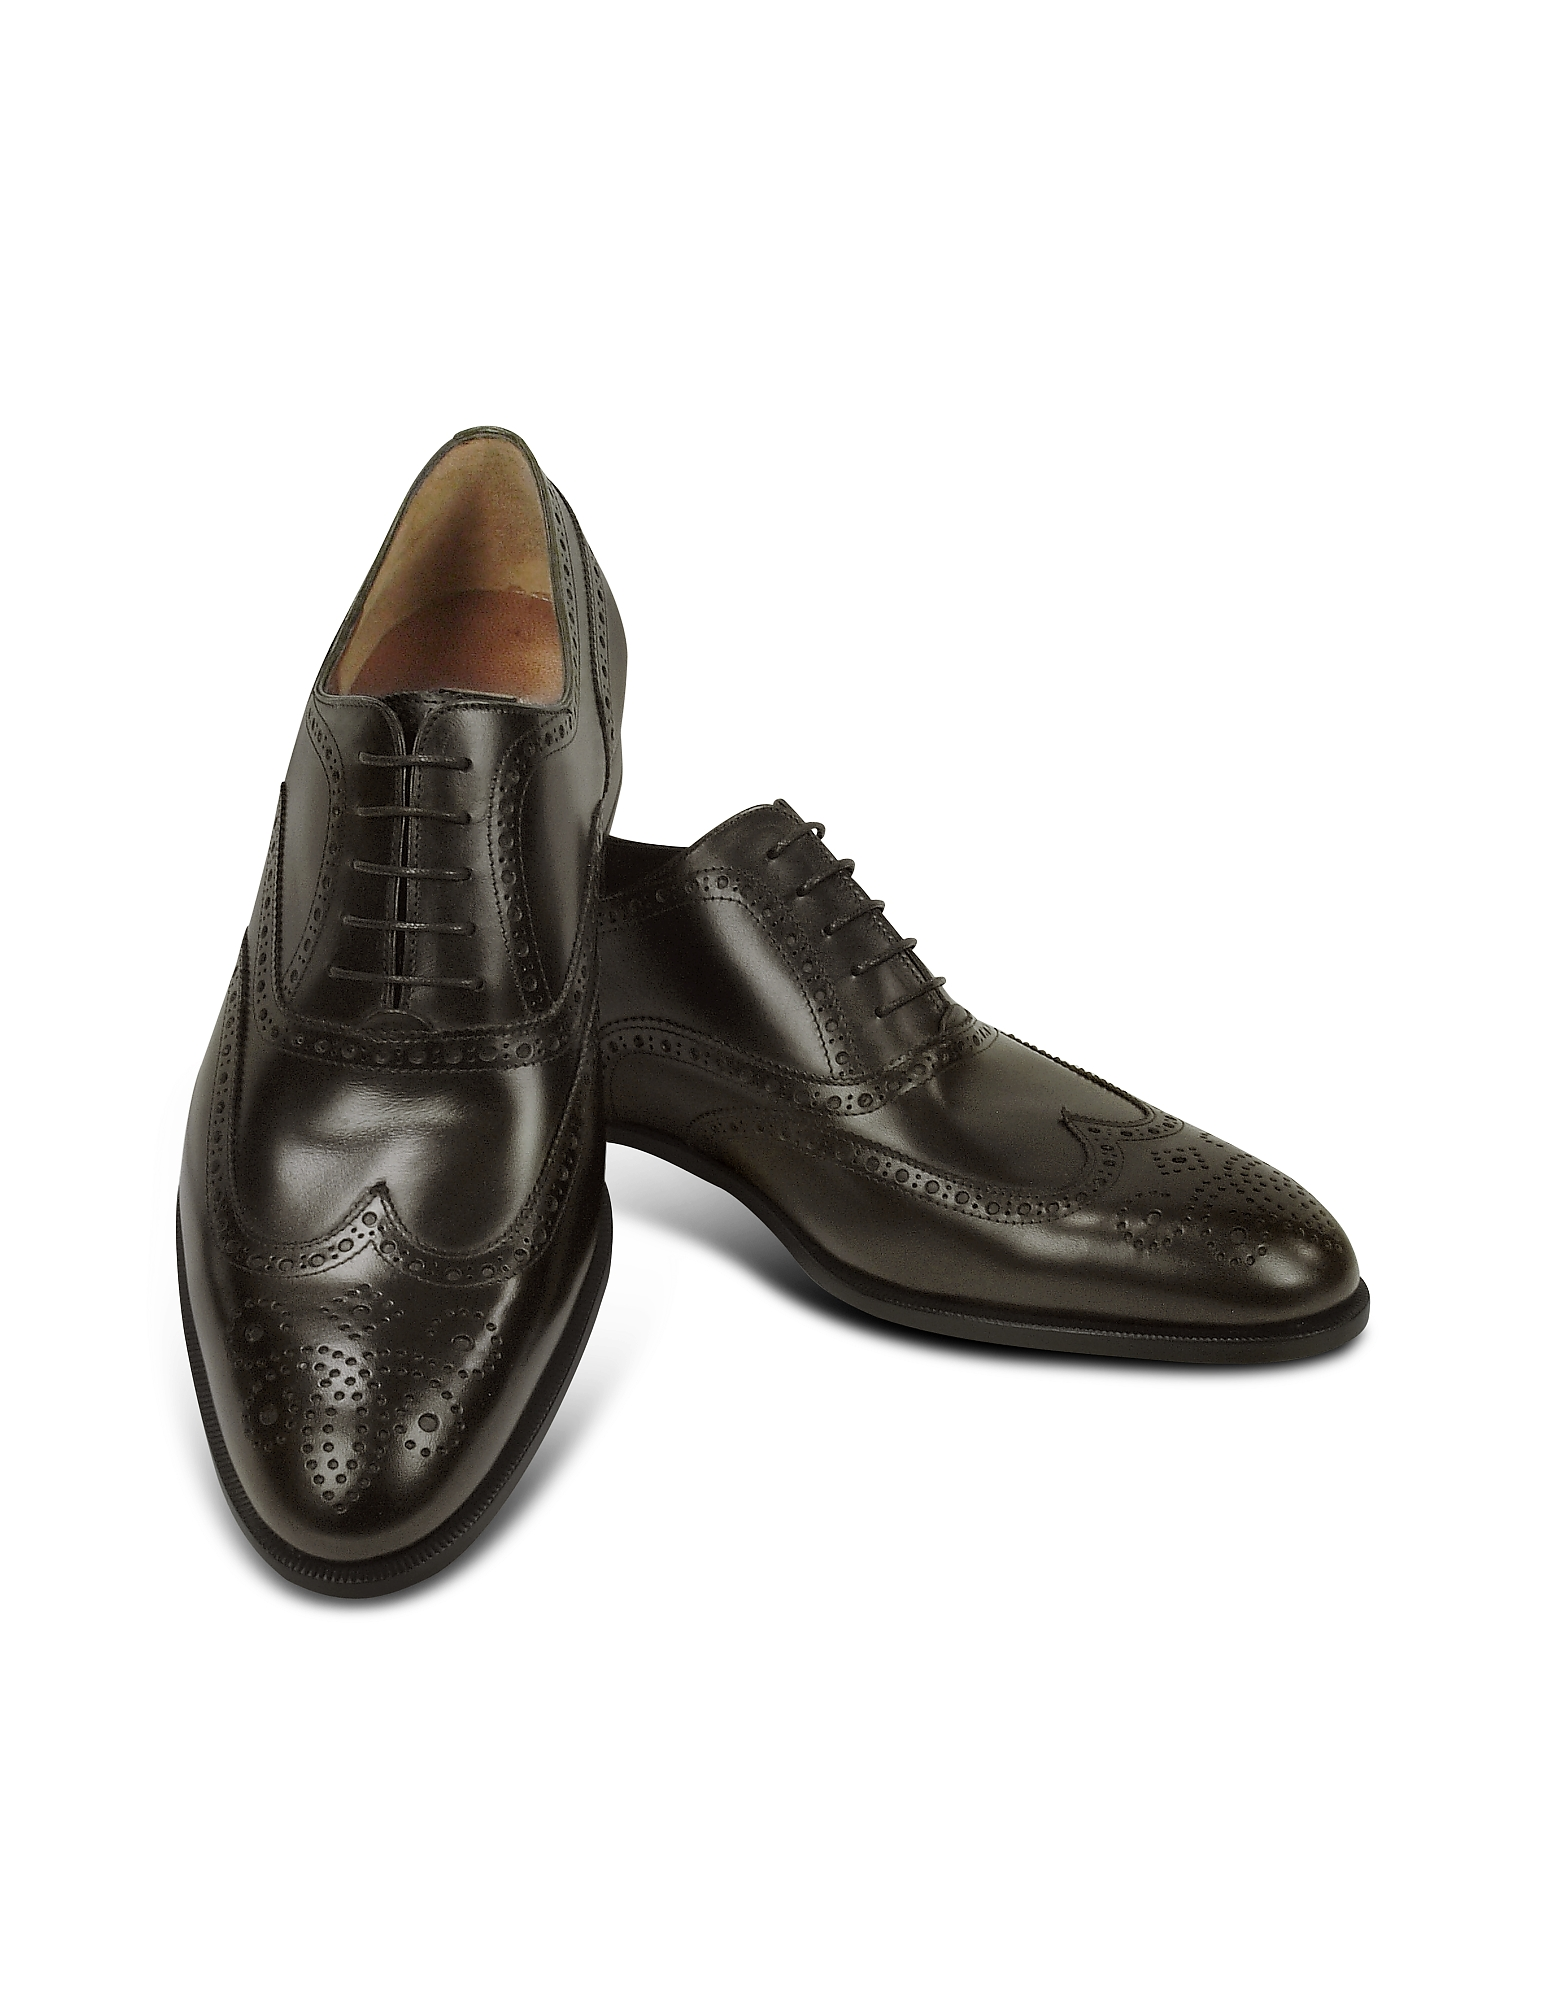 Fratelli Rossetti Shoes, Dark Brown Calf Leather Wingtip Oxford Shoes